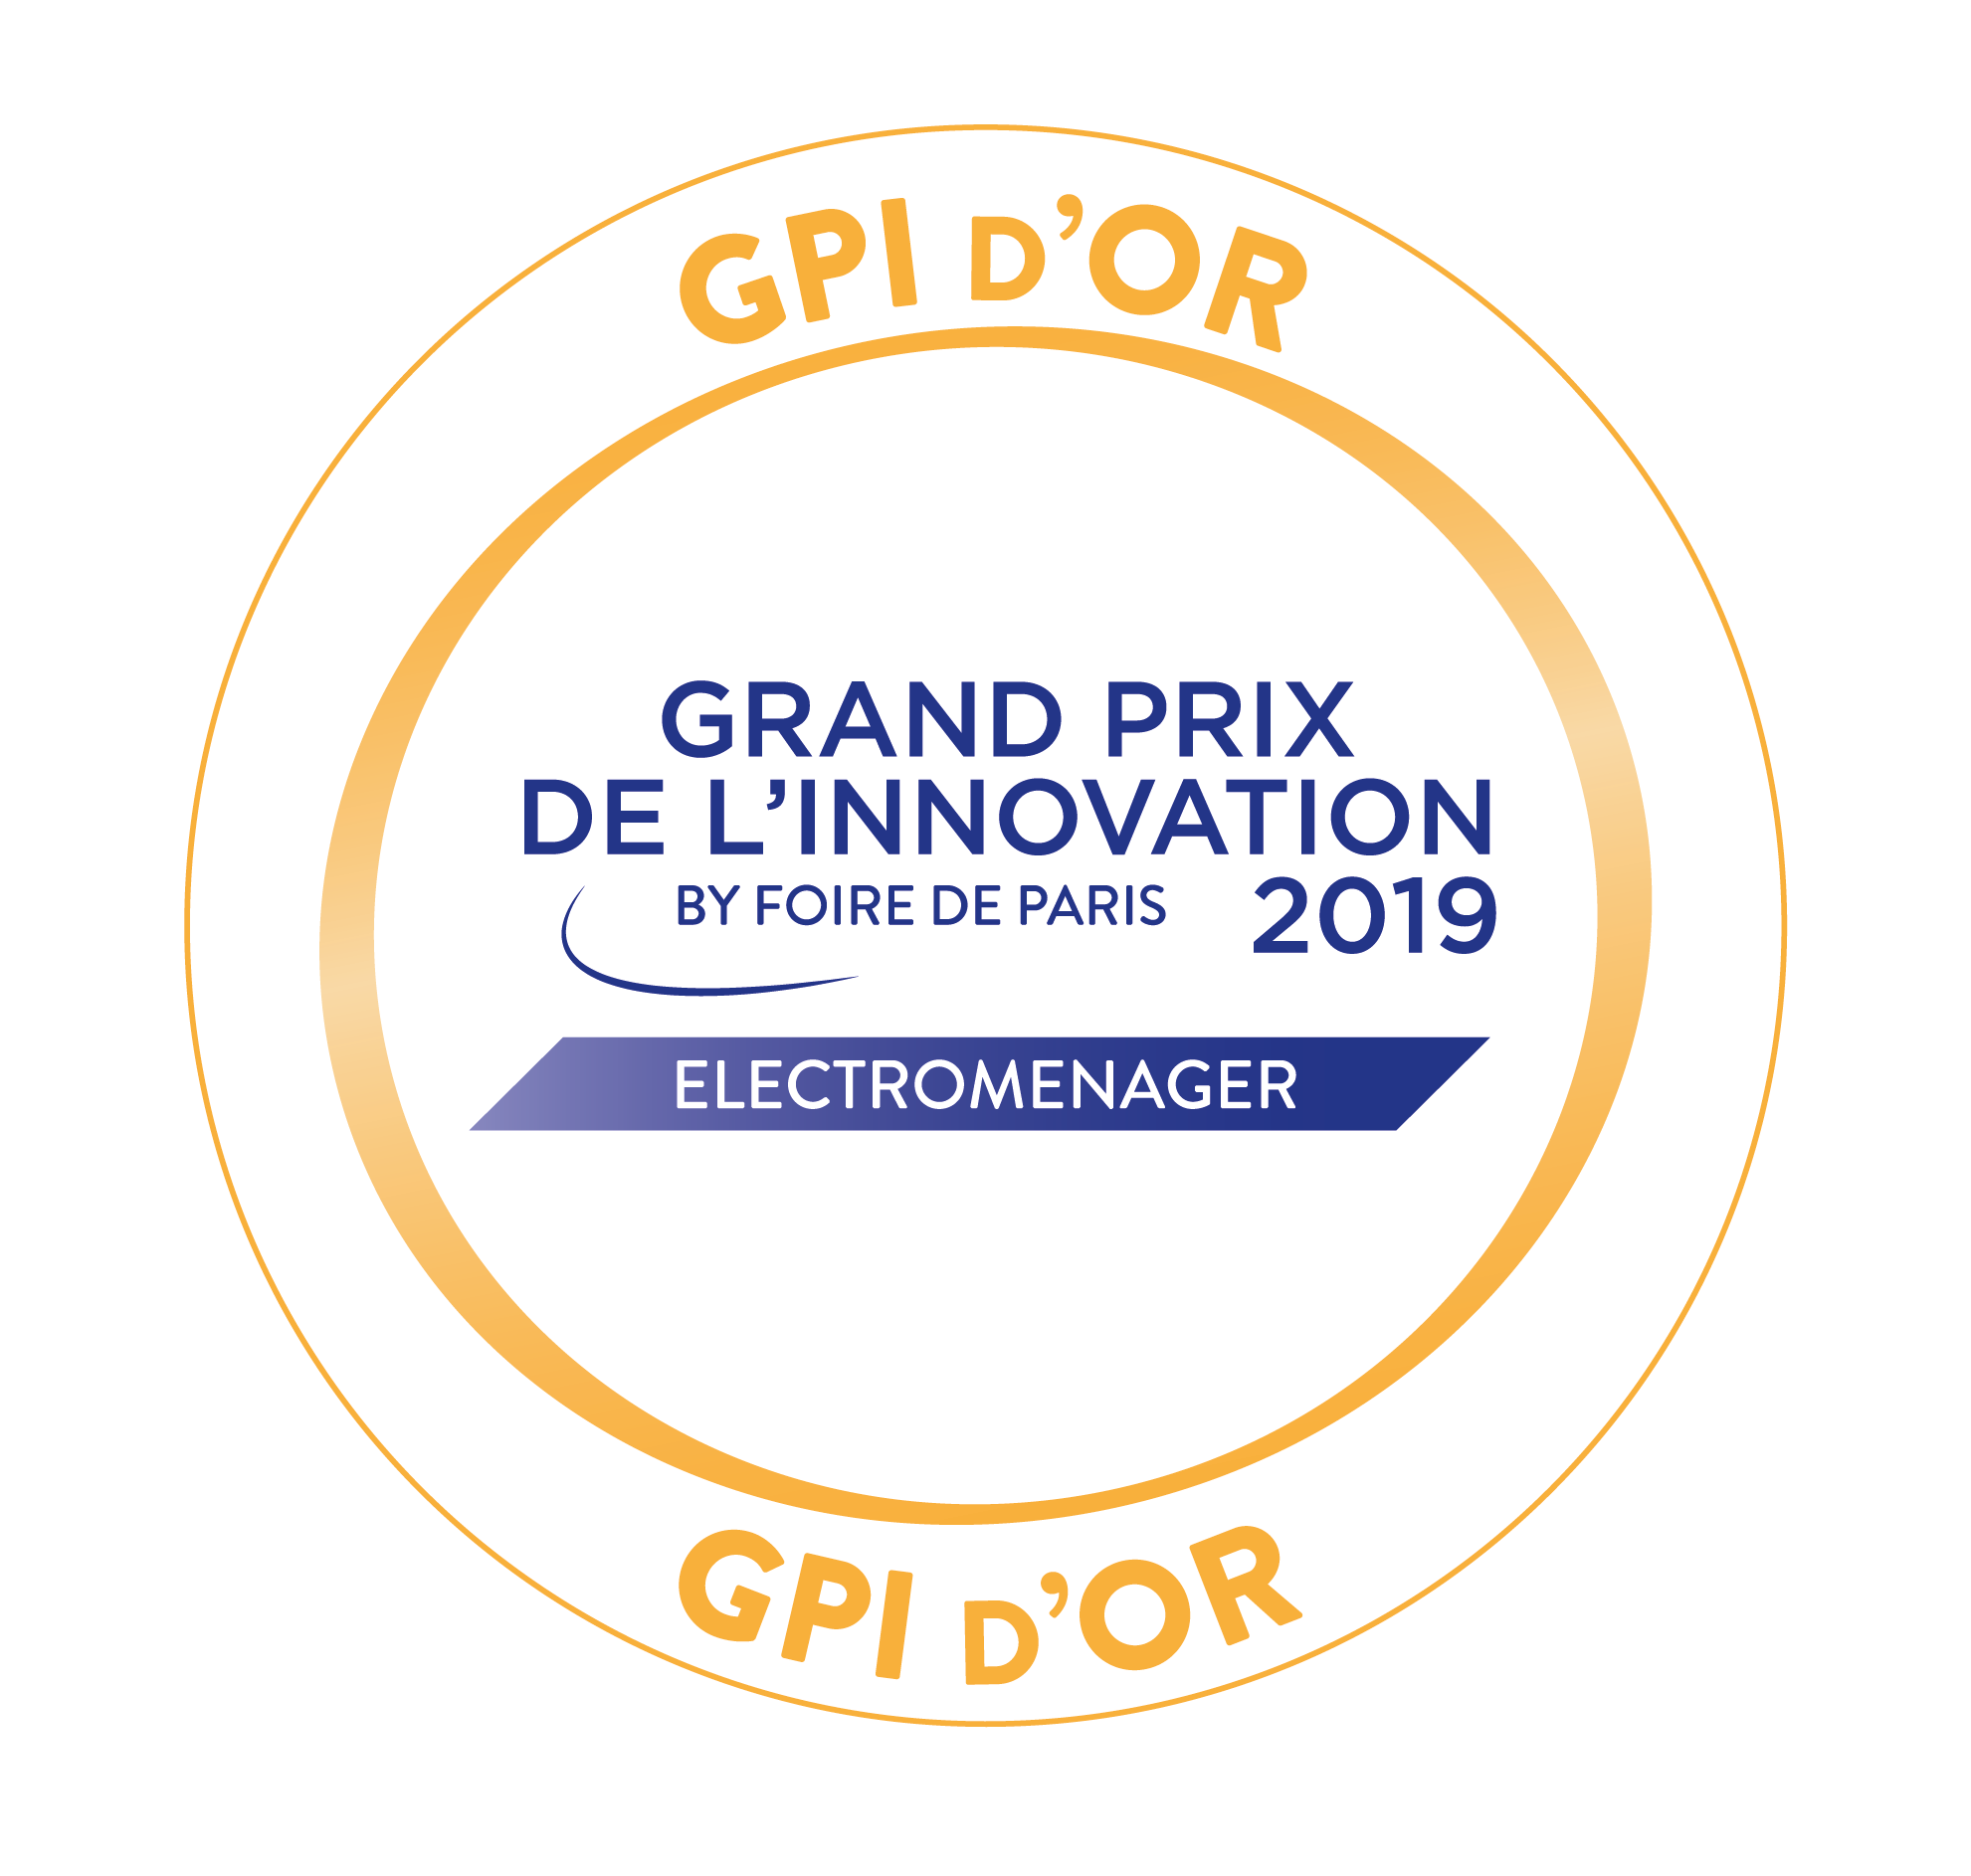 Grand prix d'innovation Or Miele